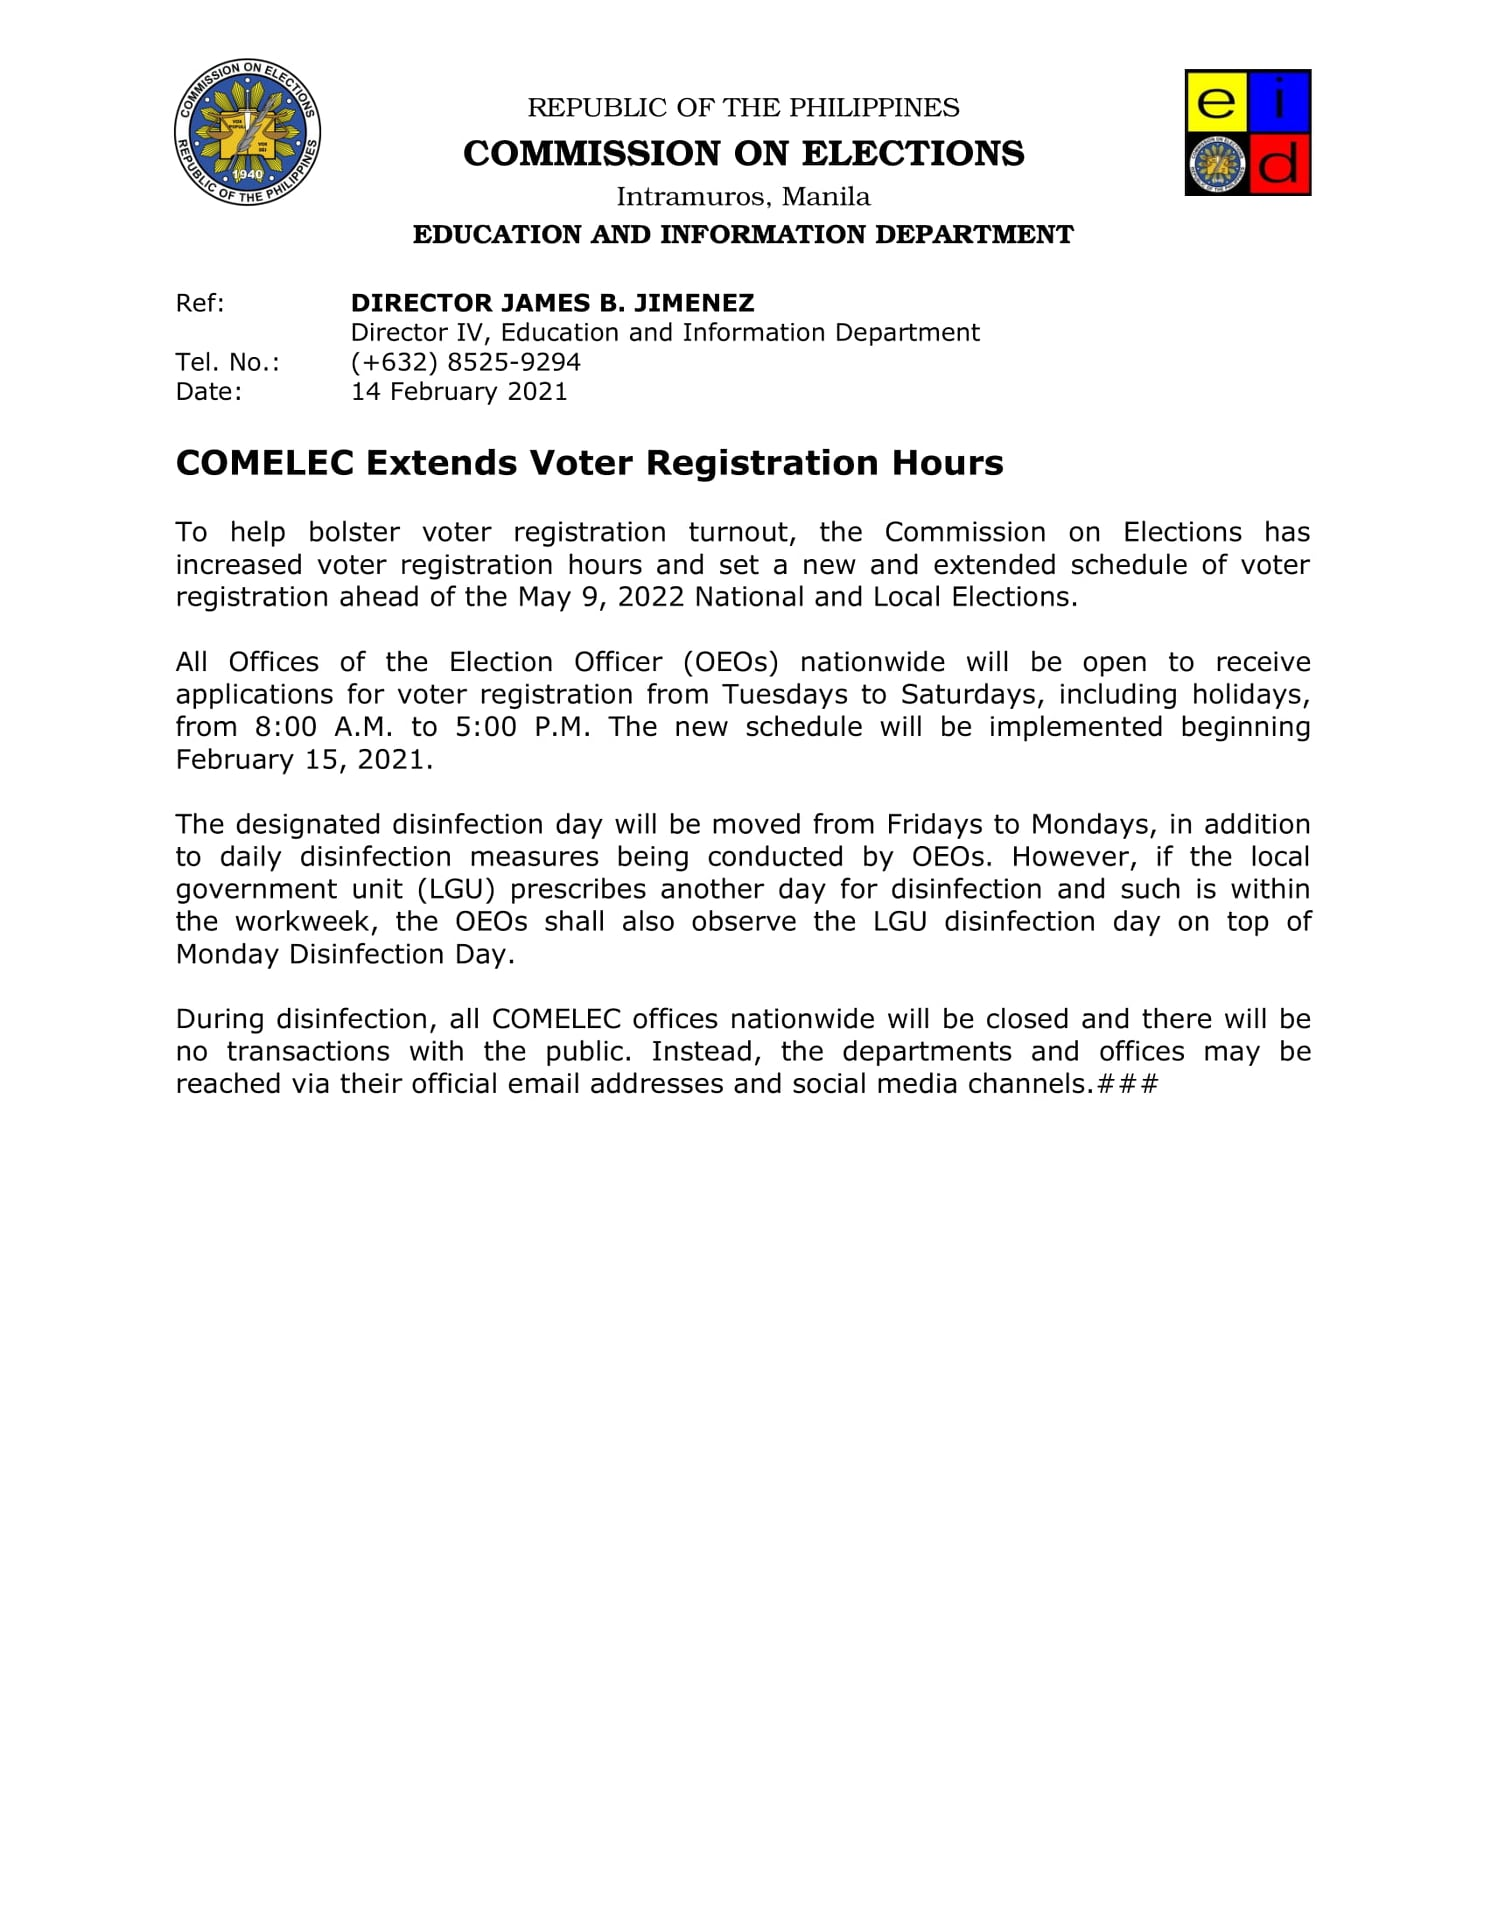 comelec extends voting hours